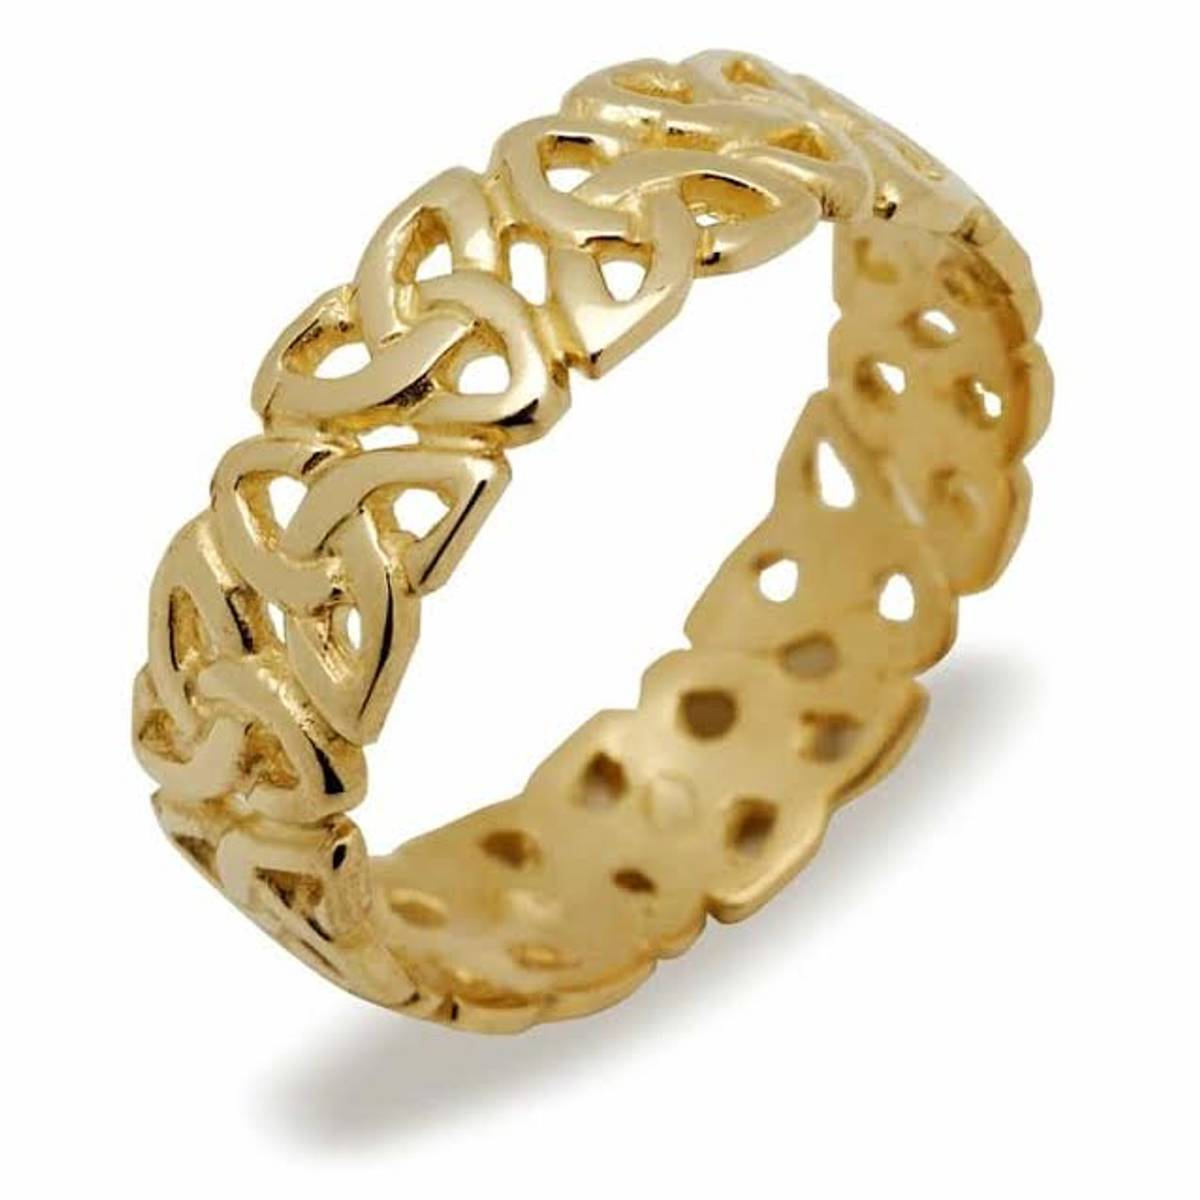 10 carat yellow gold gents Celtic open trinity knot wedding band.Also available in white gold if required.